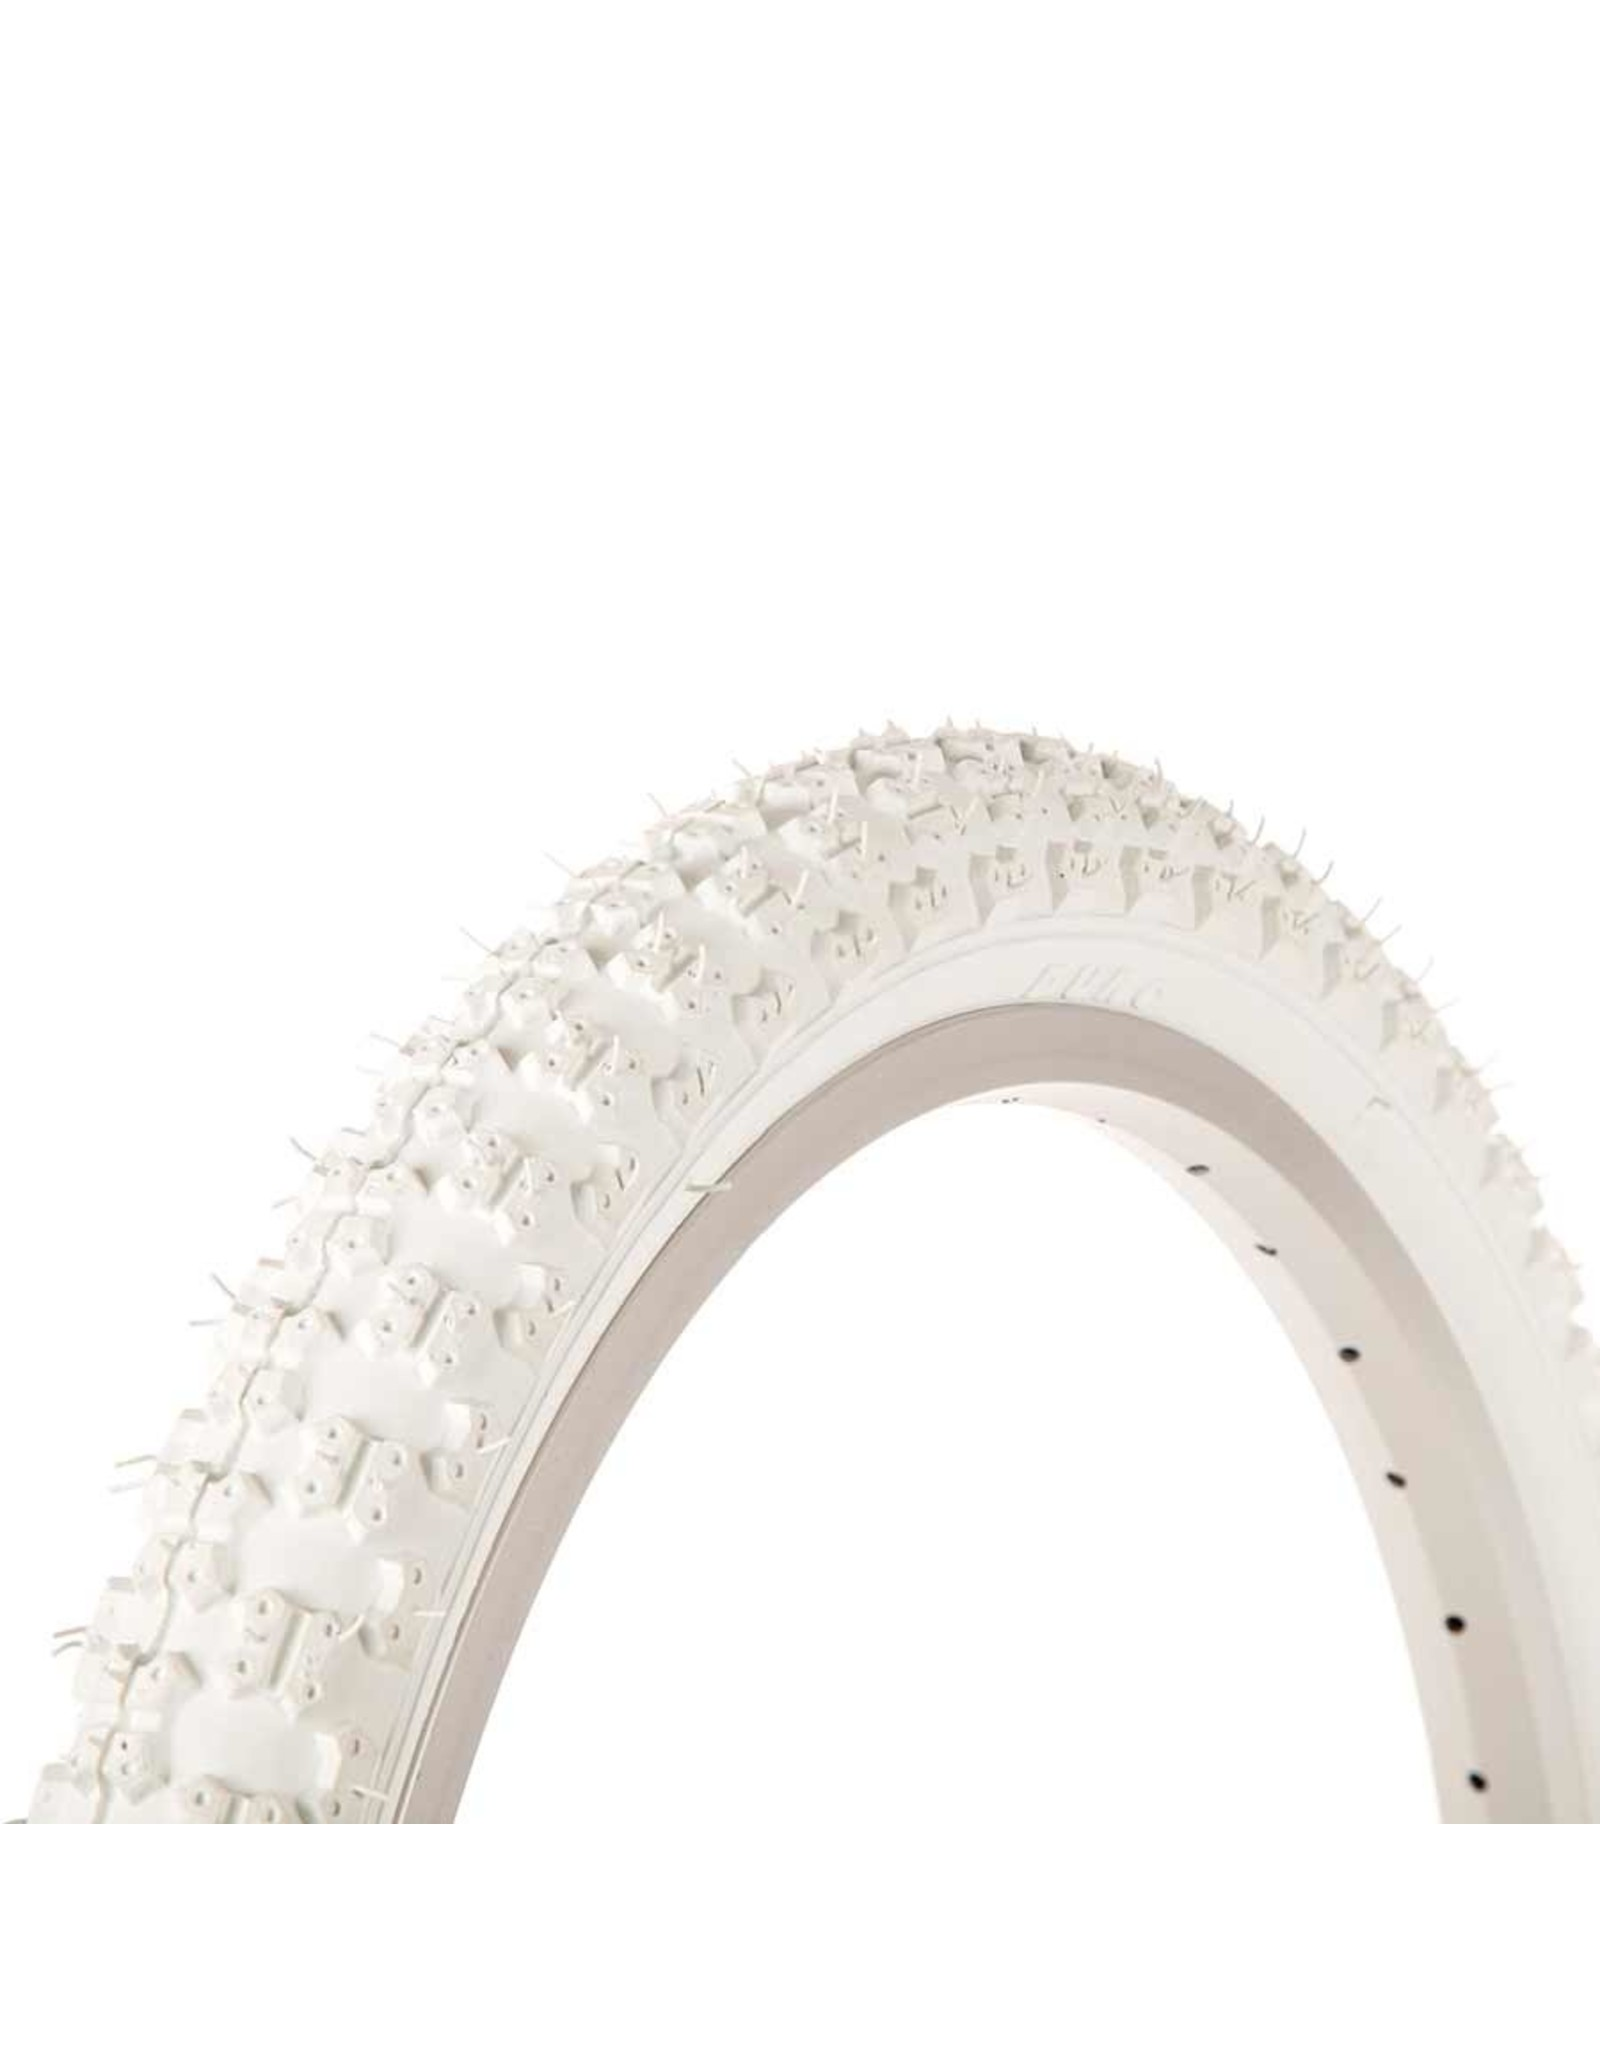 EVO EVO, Splash, Tire, 16''x1.75, Wire, Clincher, White